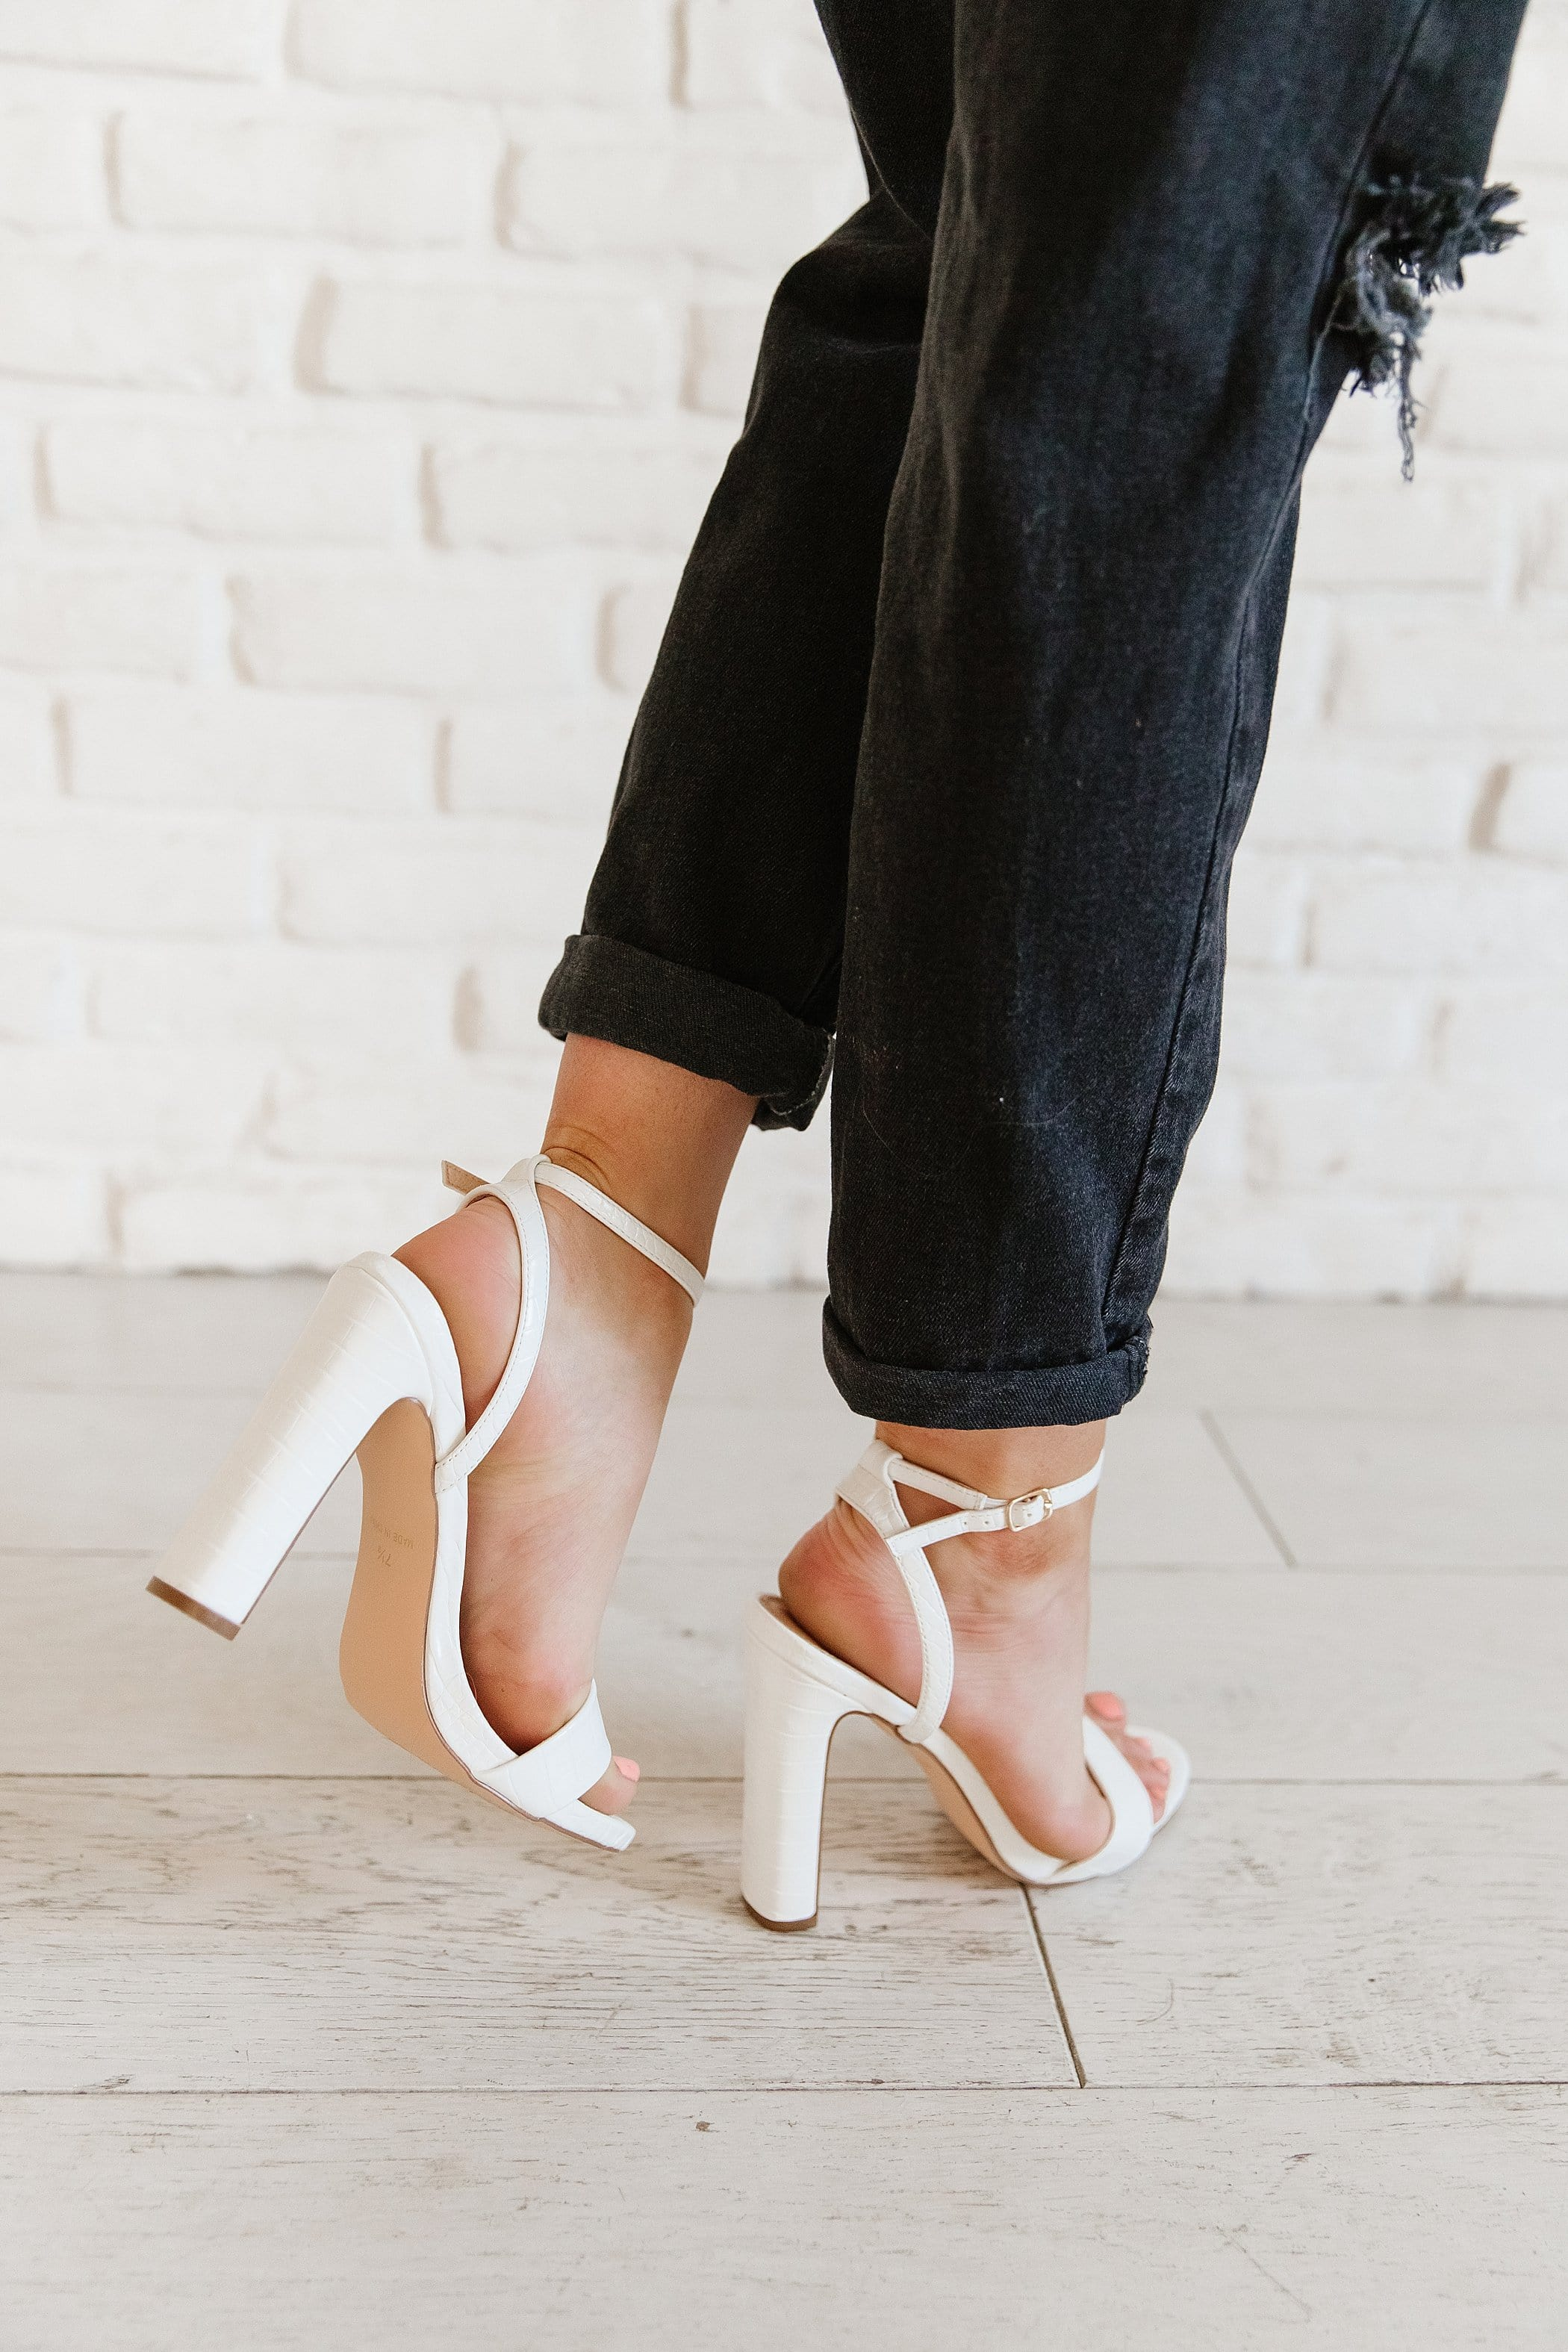 The Margo Ankle Strap Shoes in White